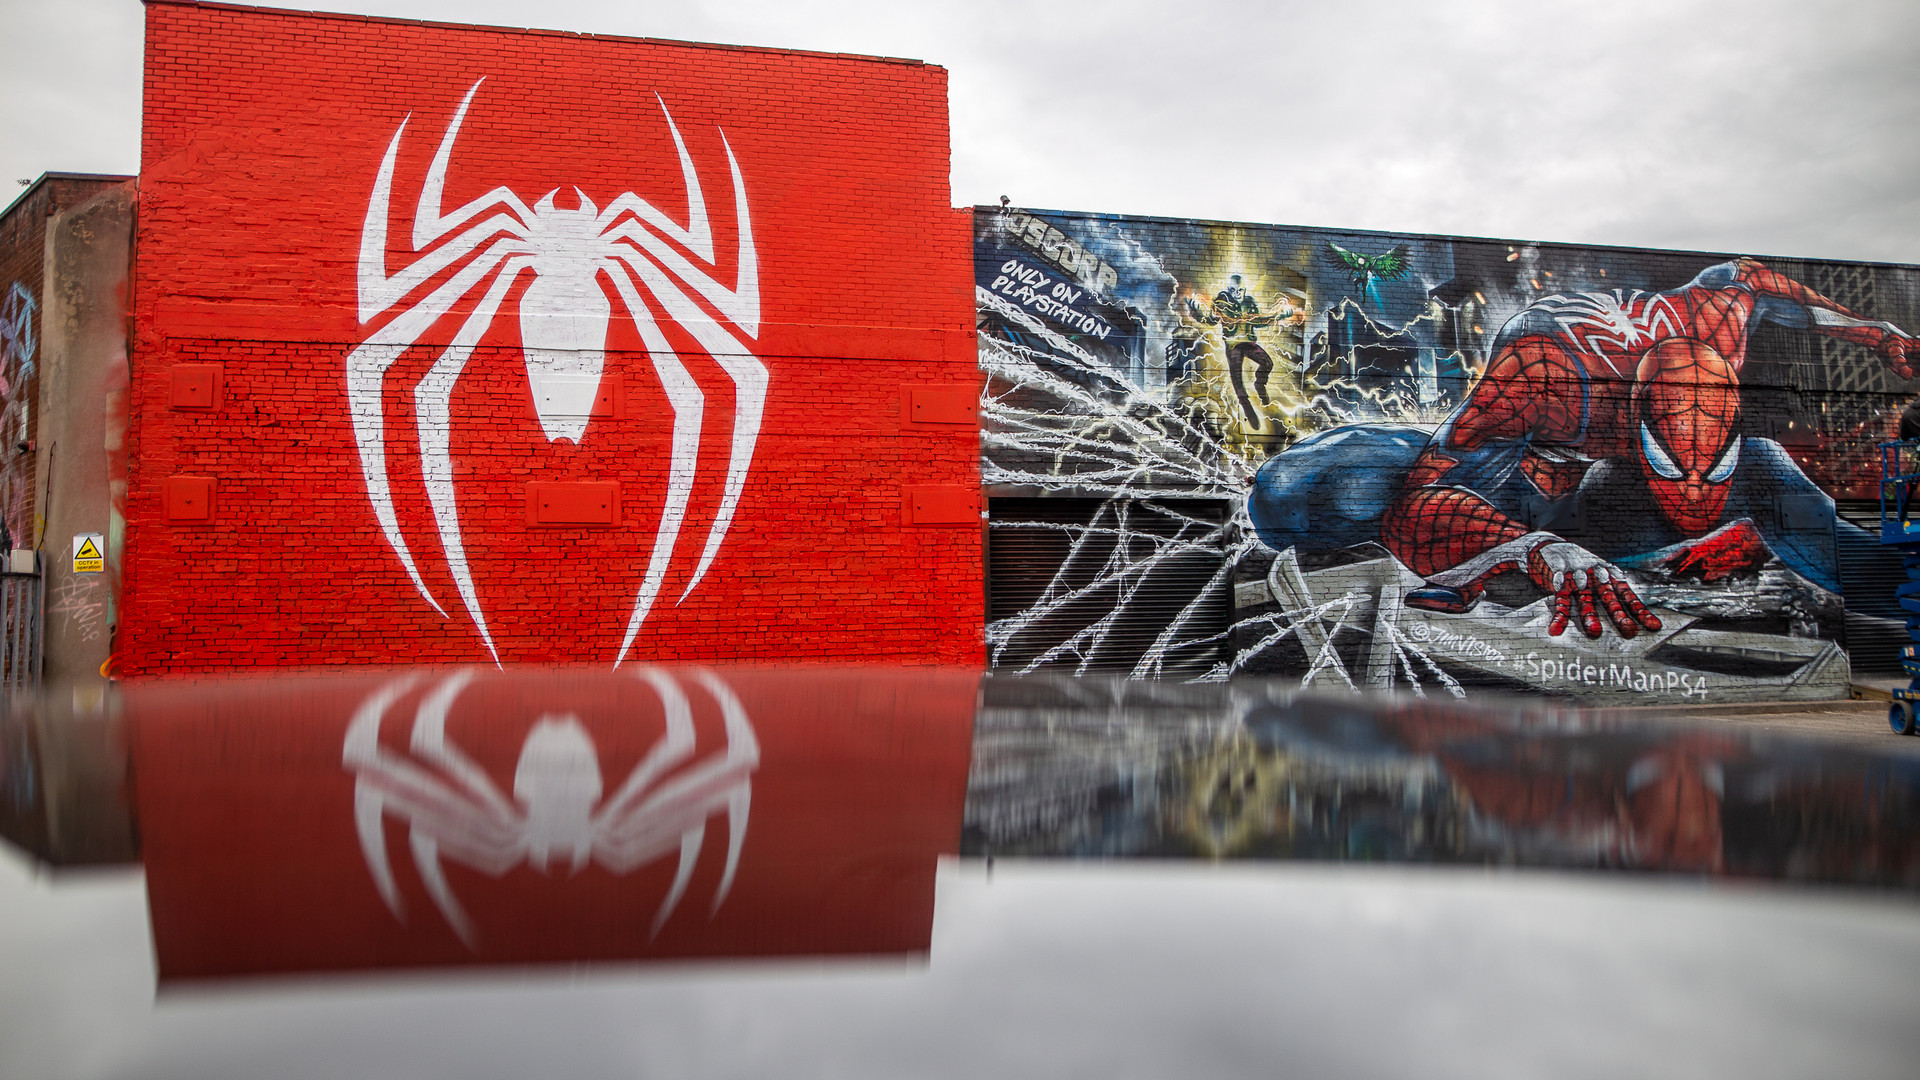 Spider-Man Reflection